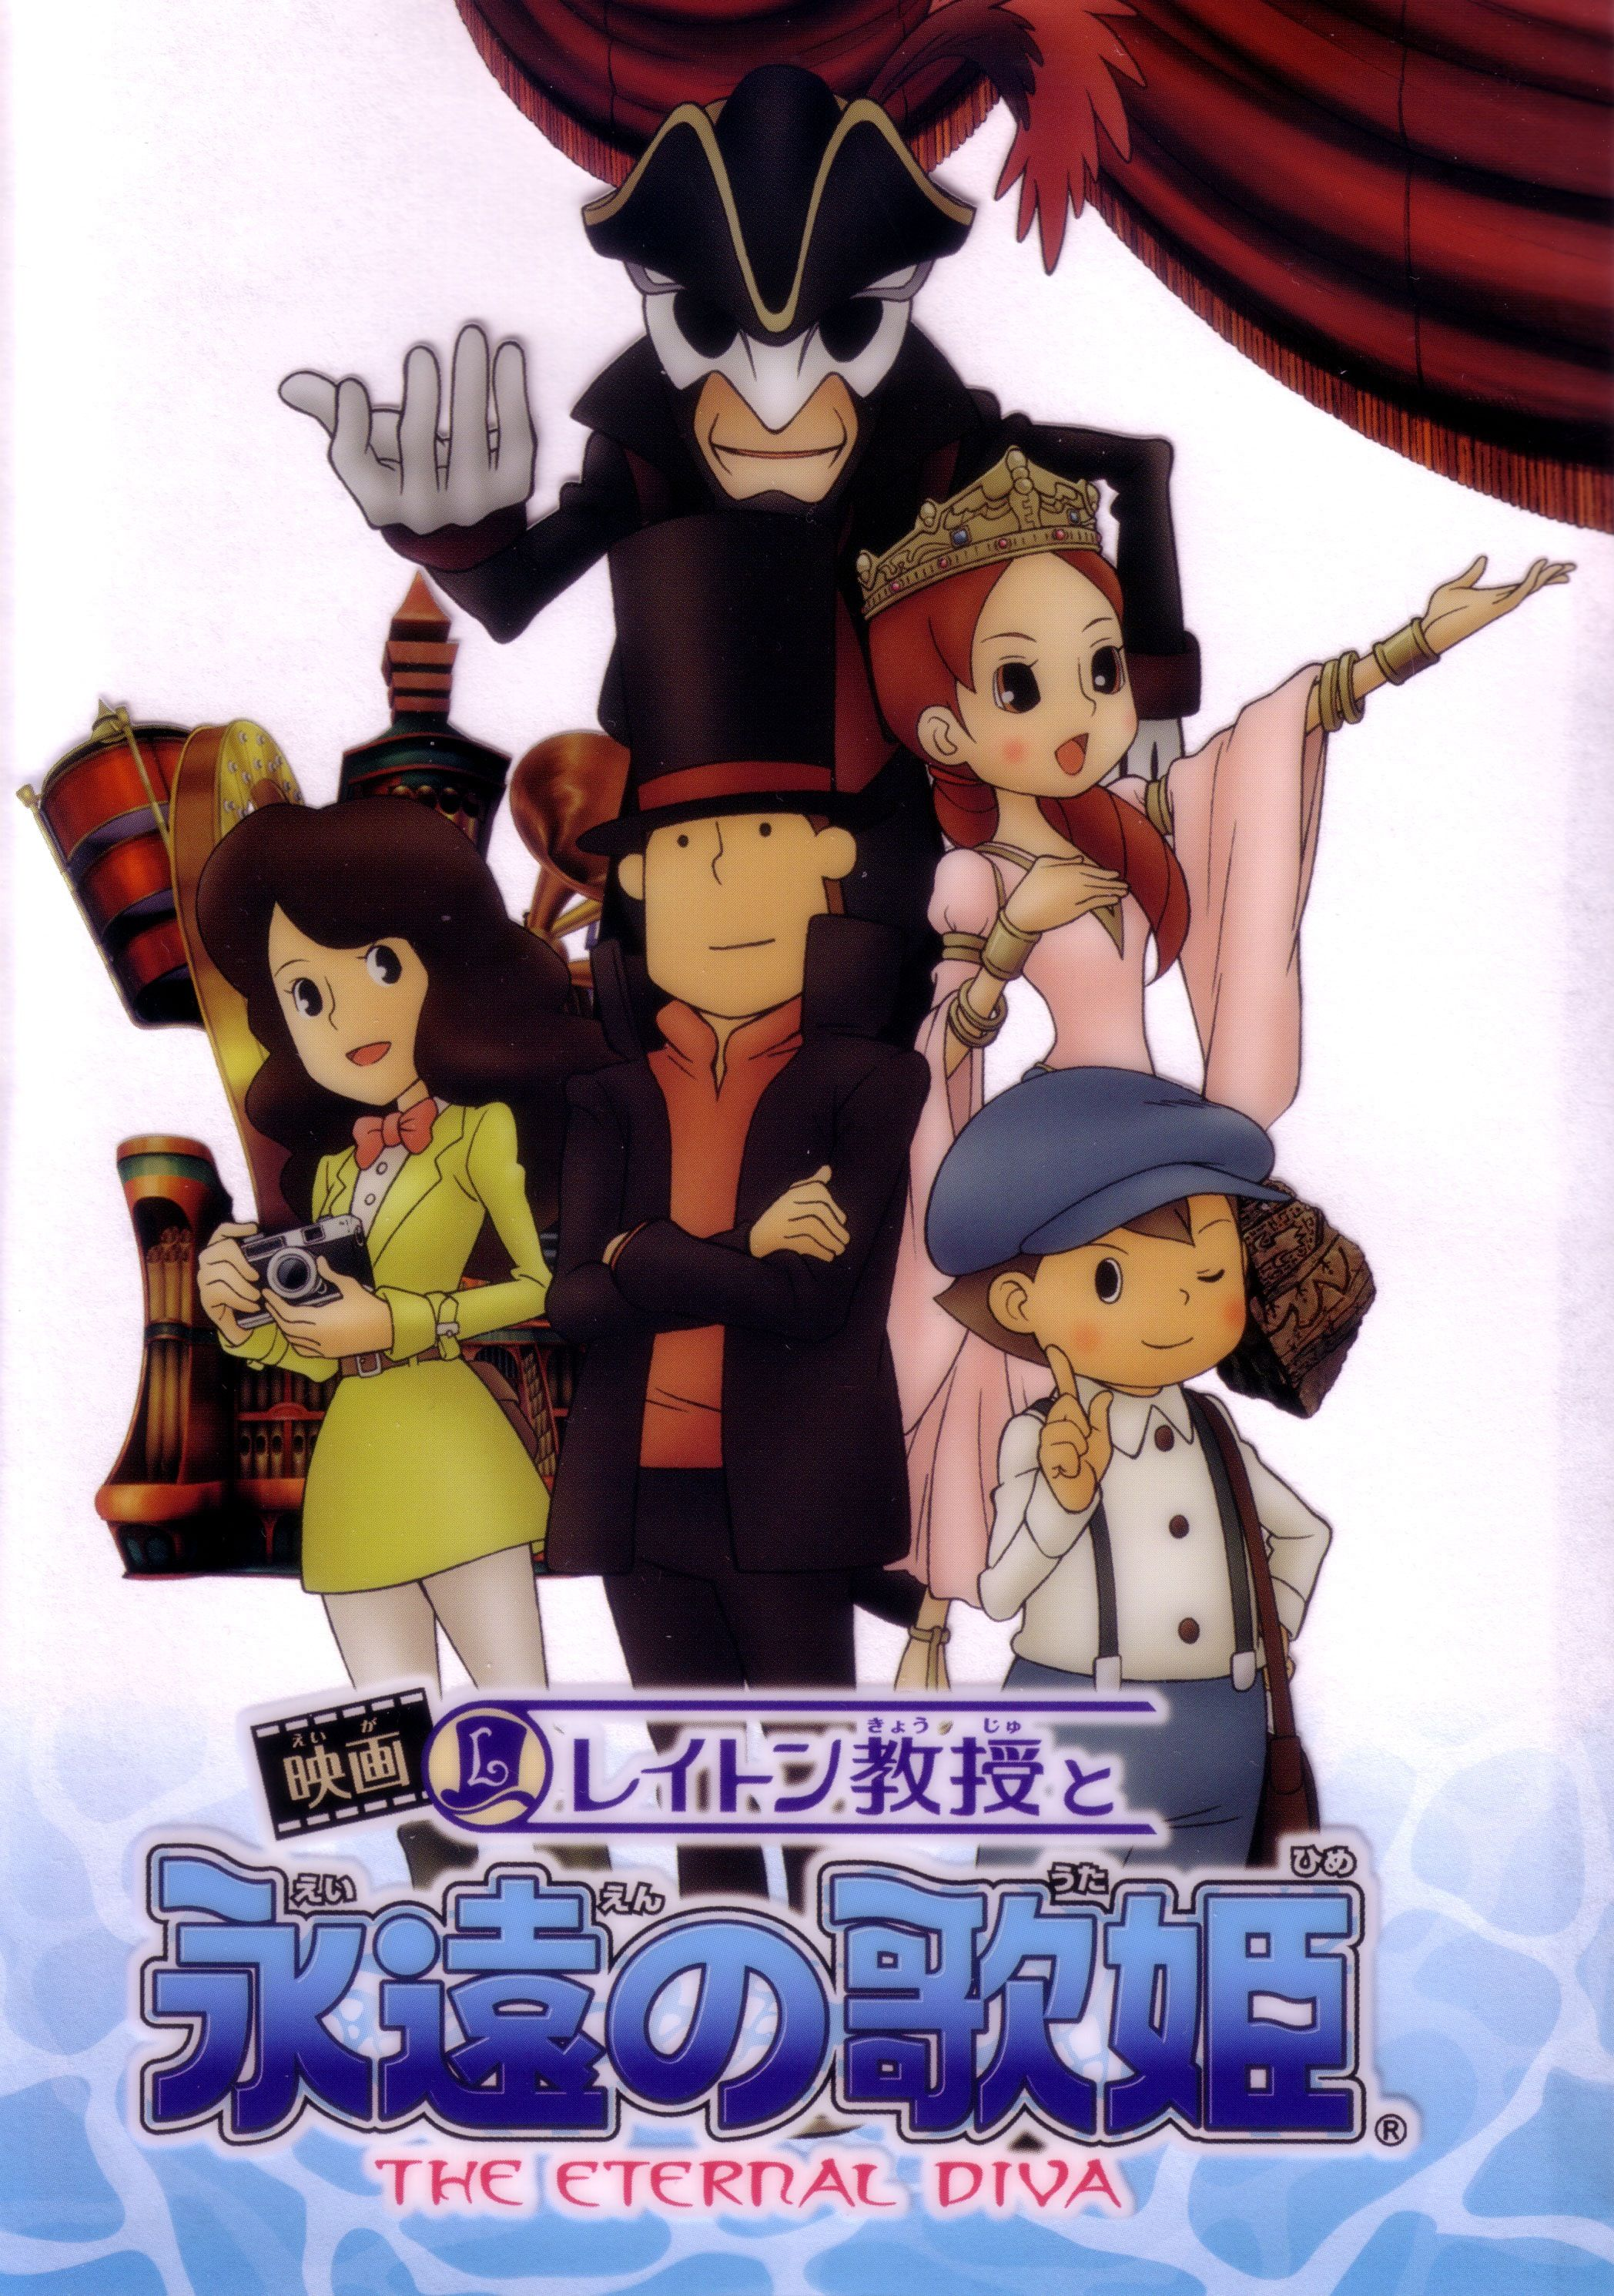 A Japanese Poster Or Dvd Cover Of Professor Layton And The